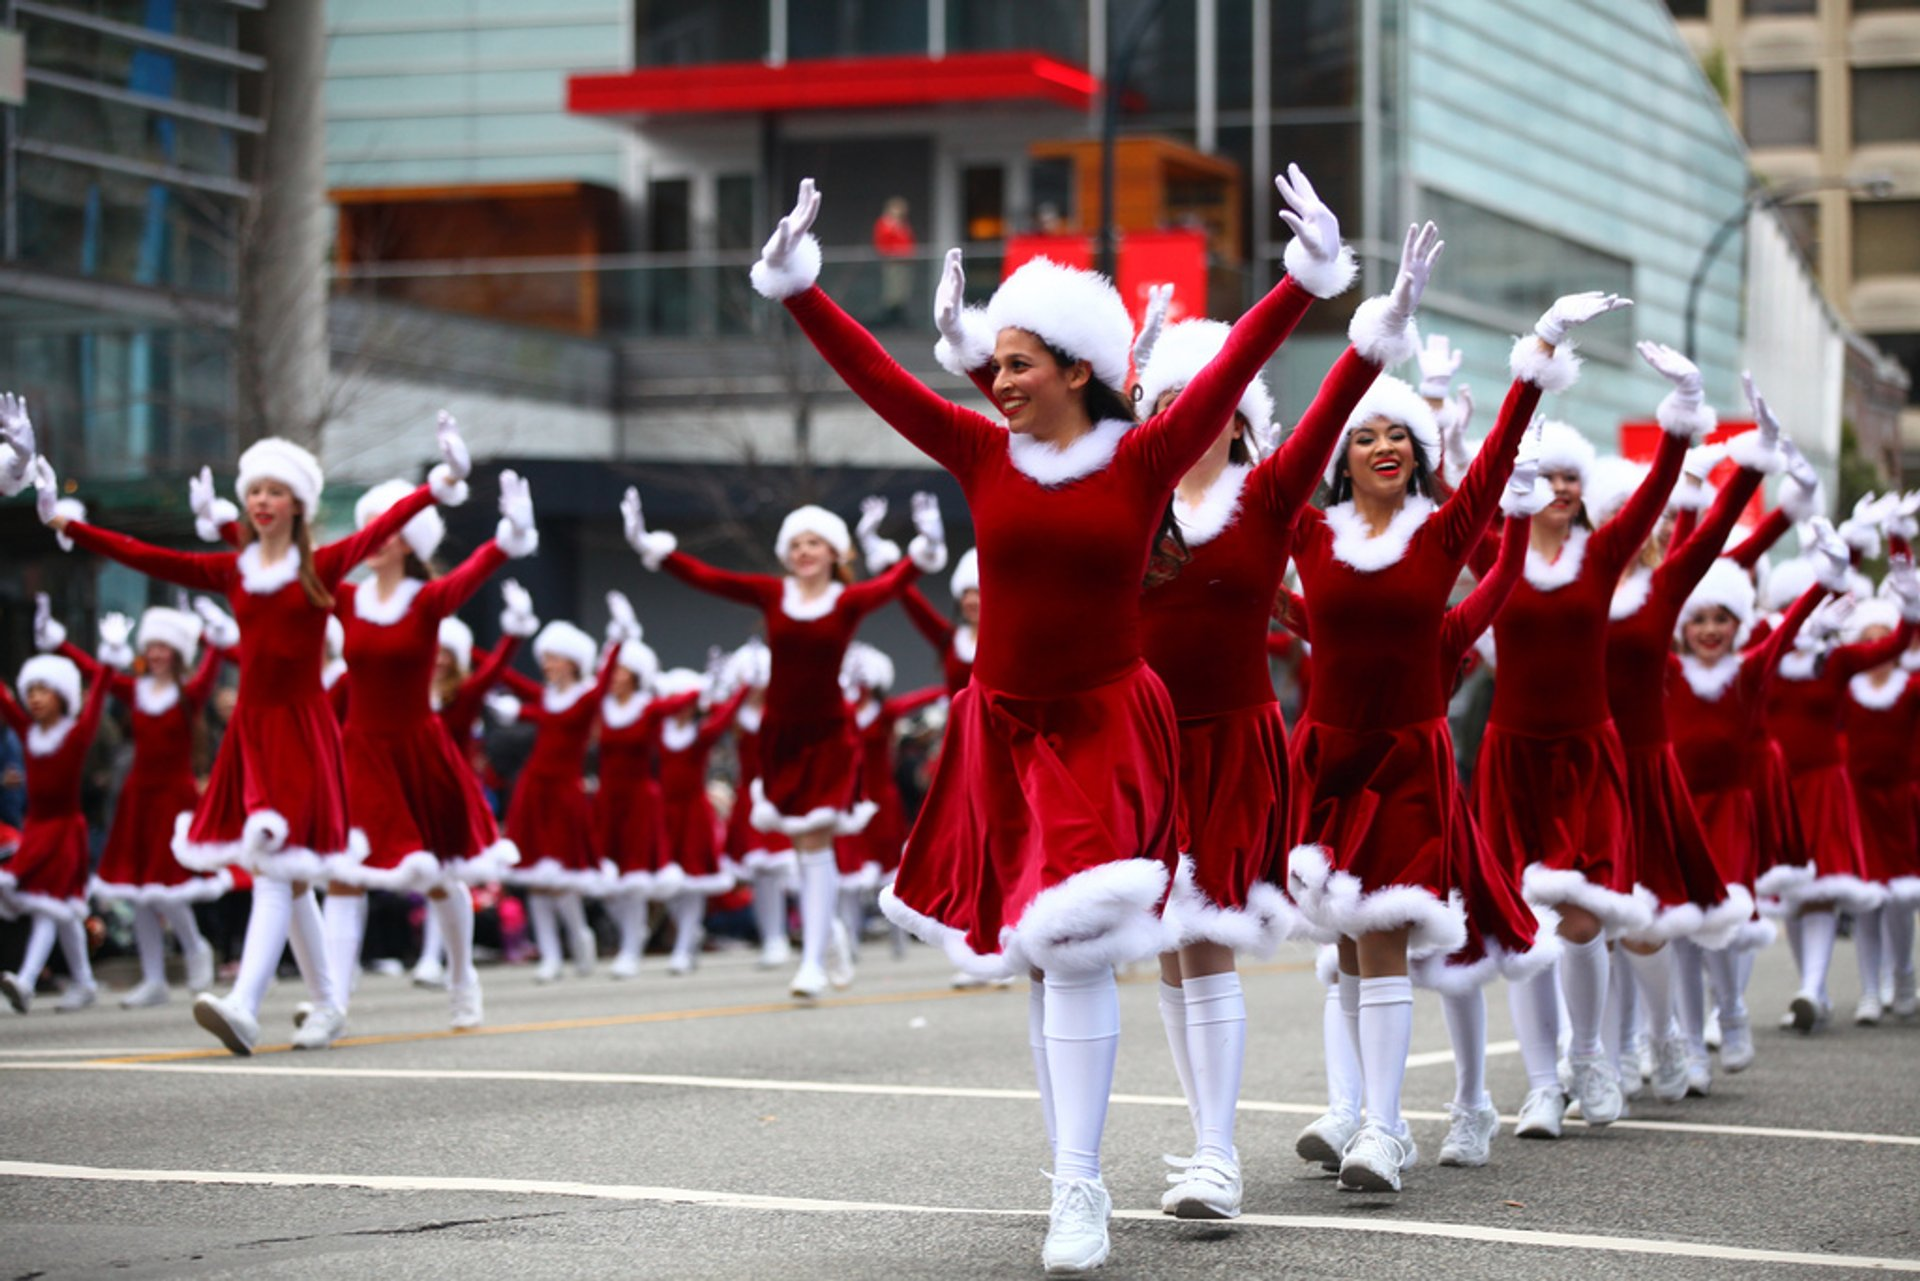 Rogers Santa Claus Parade in 2013 2020